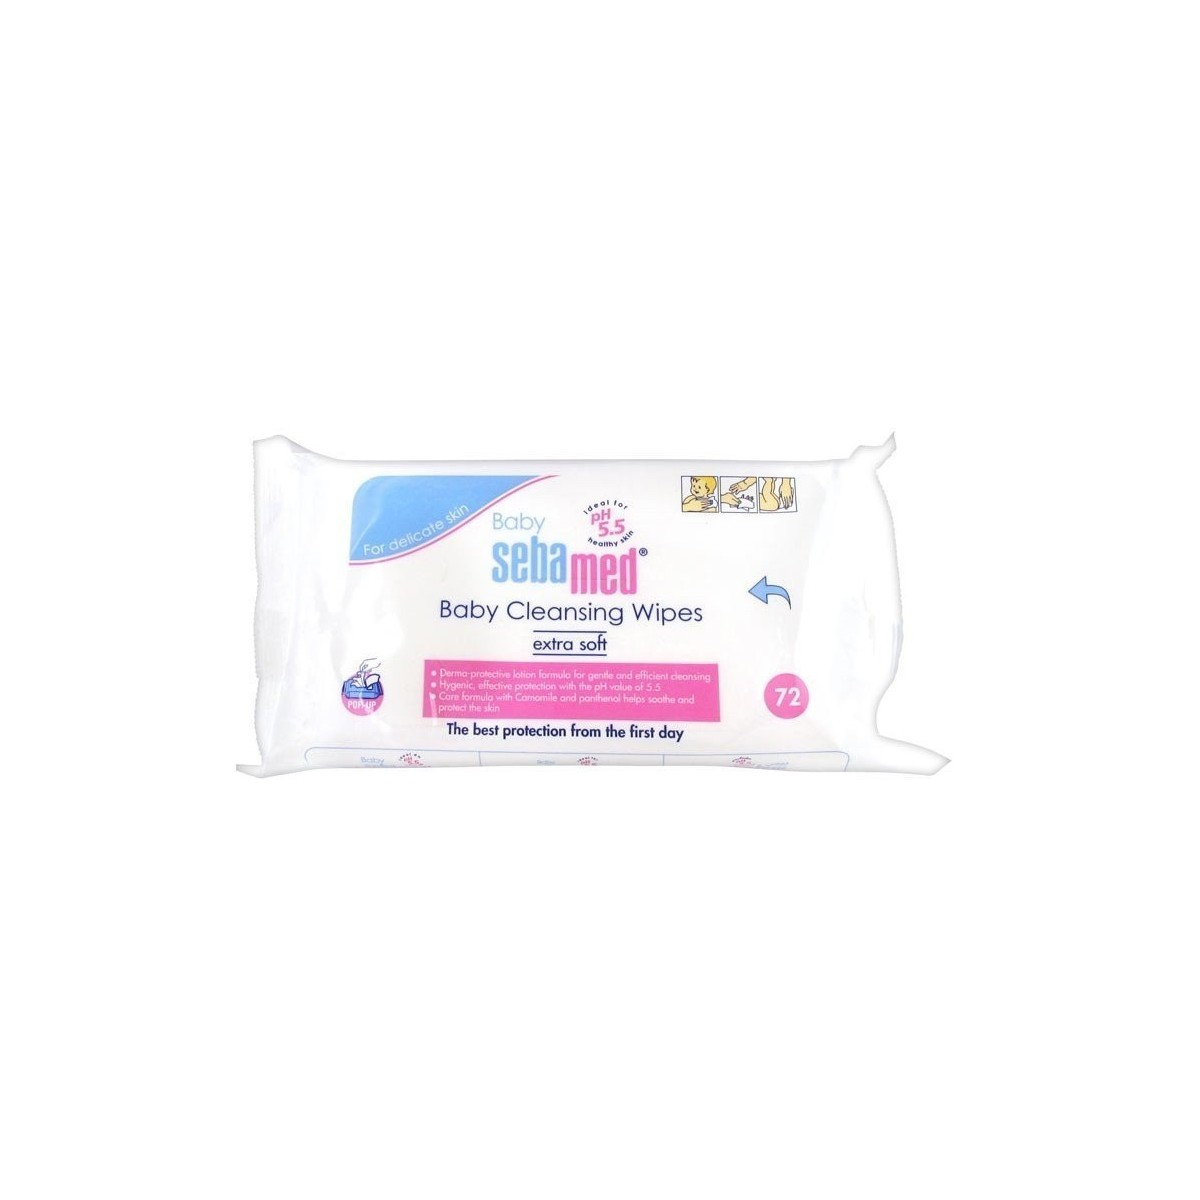 Sebamed Baby Cleansing Wipes Extra Soft 72 Pcs